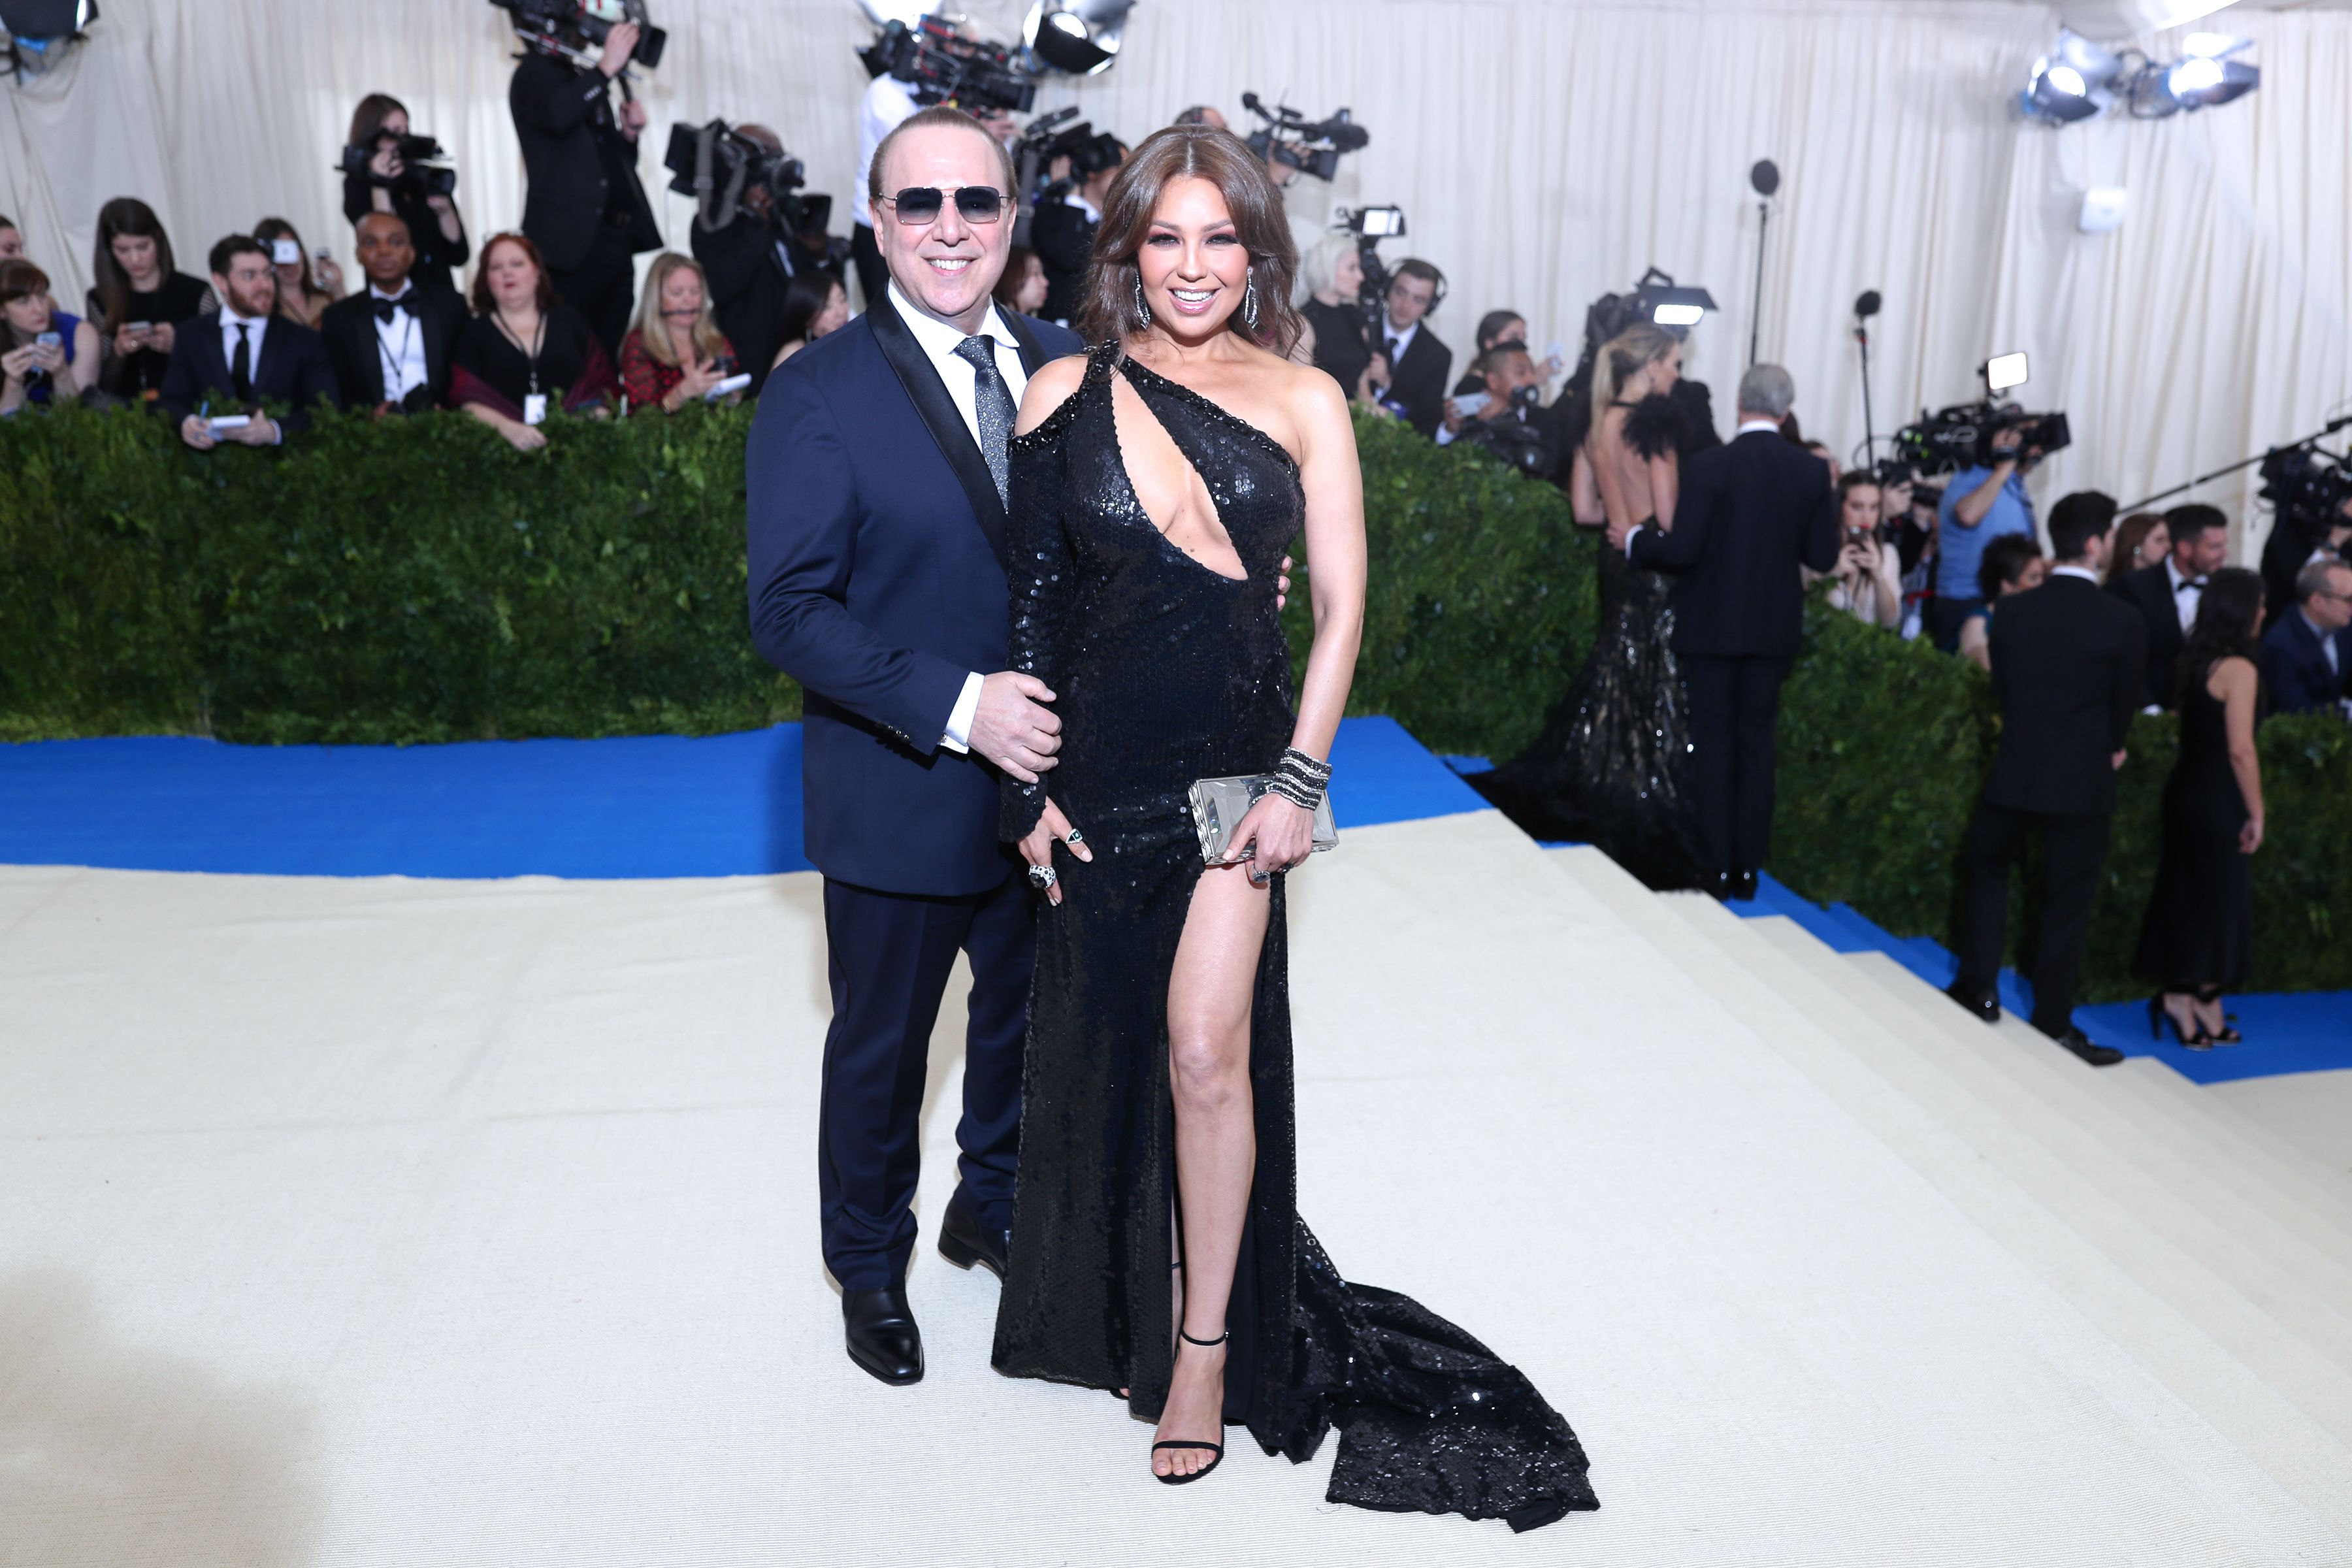 Photo by David Prutting/BFA/REX/Shutterstock (8770834fv) Tommy Mottola, Thalia The Costume Institute Benefit celebrating the opening of Rei Kawakubo/Comme des Garcons: Art of the In-Between, Arrivals, The Metropolitan Museum of Art, New York, USA - 01 May 2017